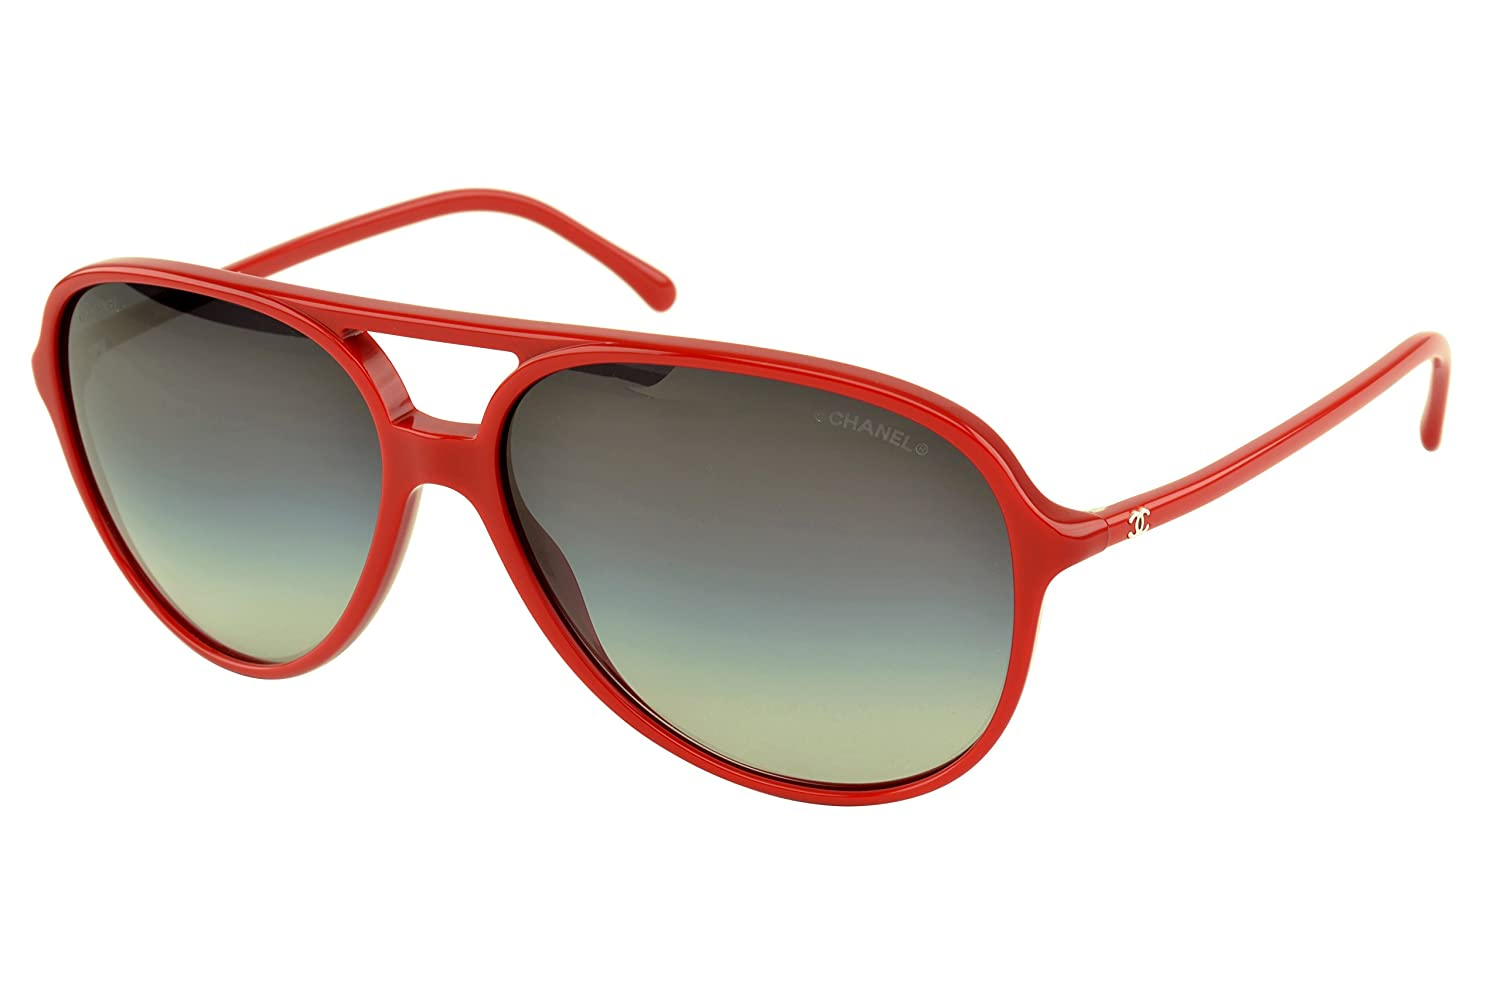 Gafas de Sol Chanel CH5287 ELECTRIC RED/GRAY GRADIENT ...